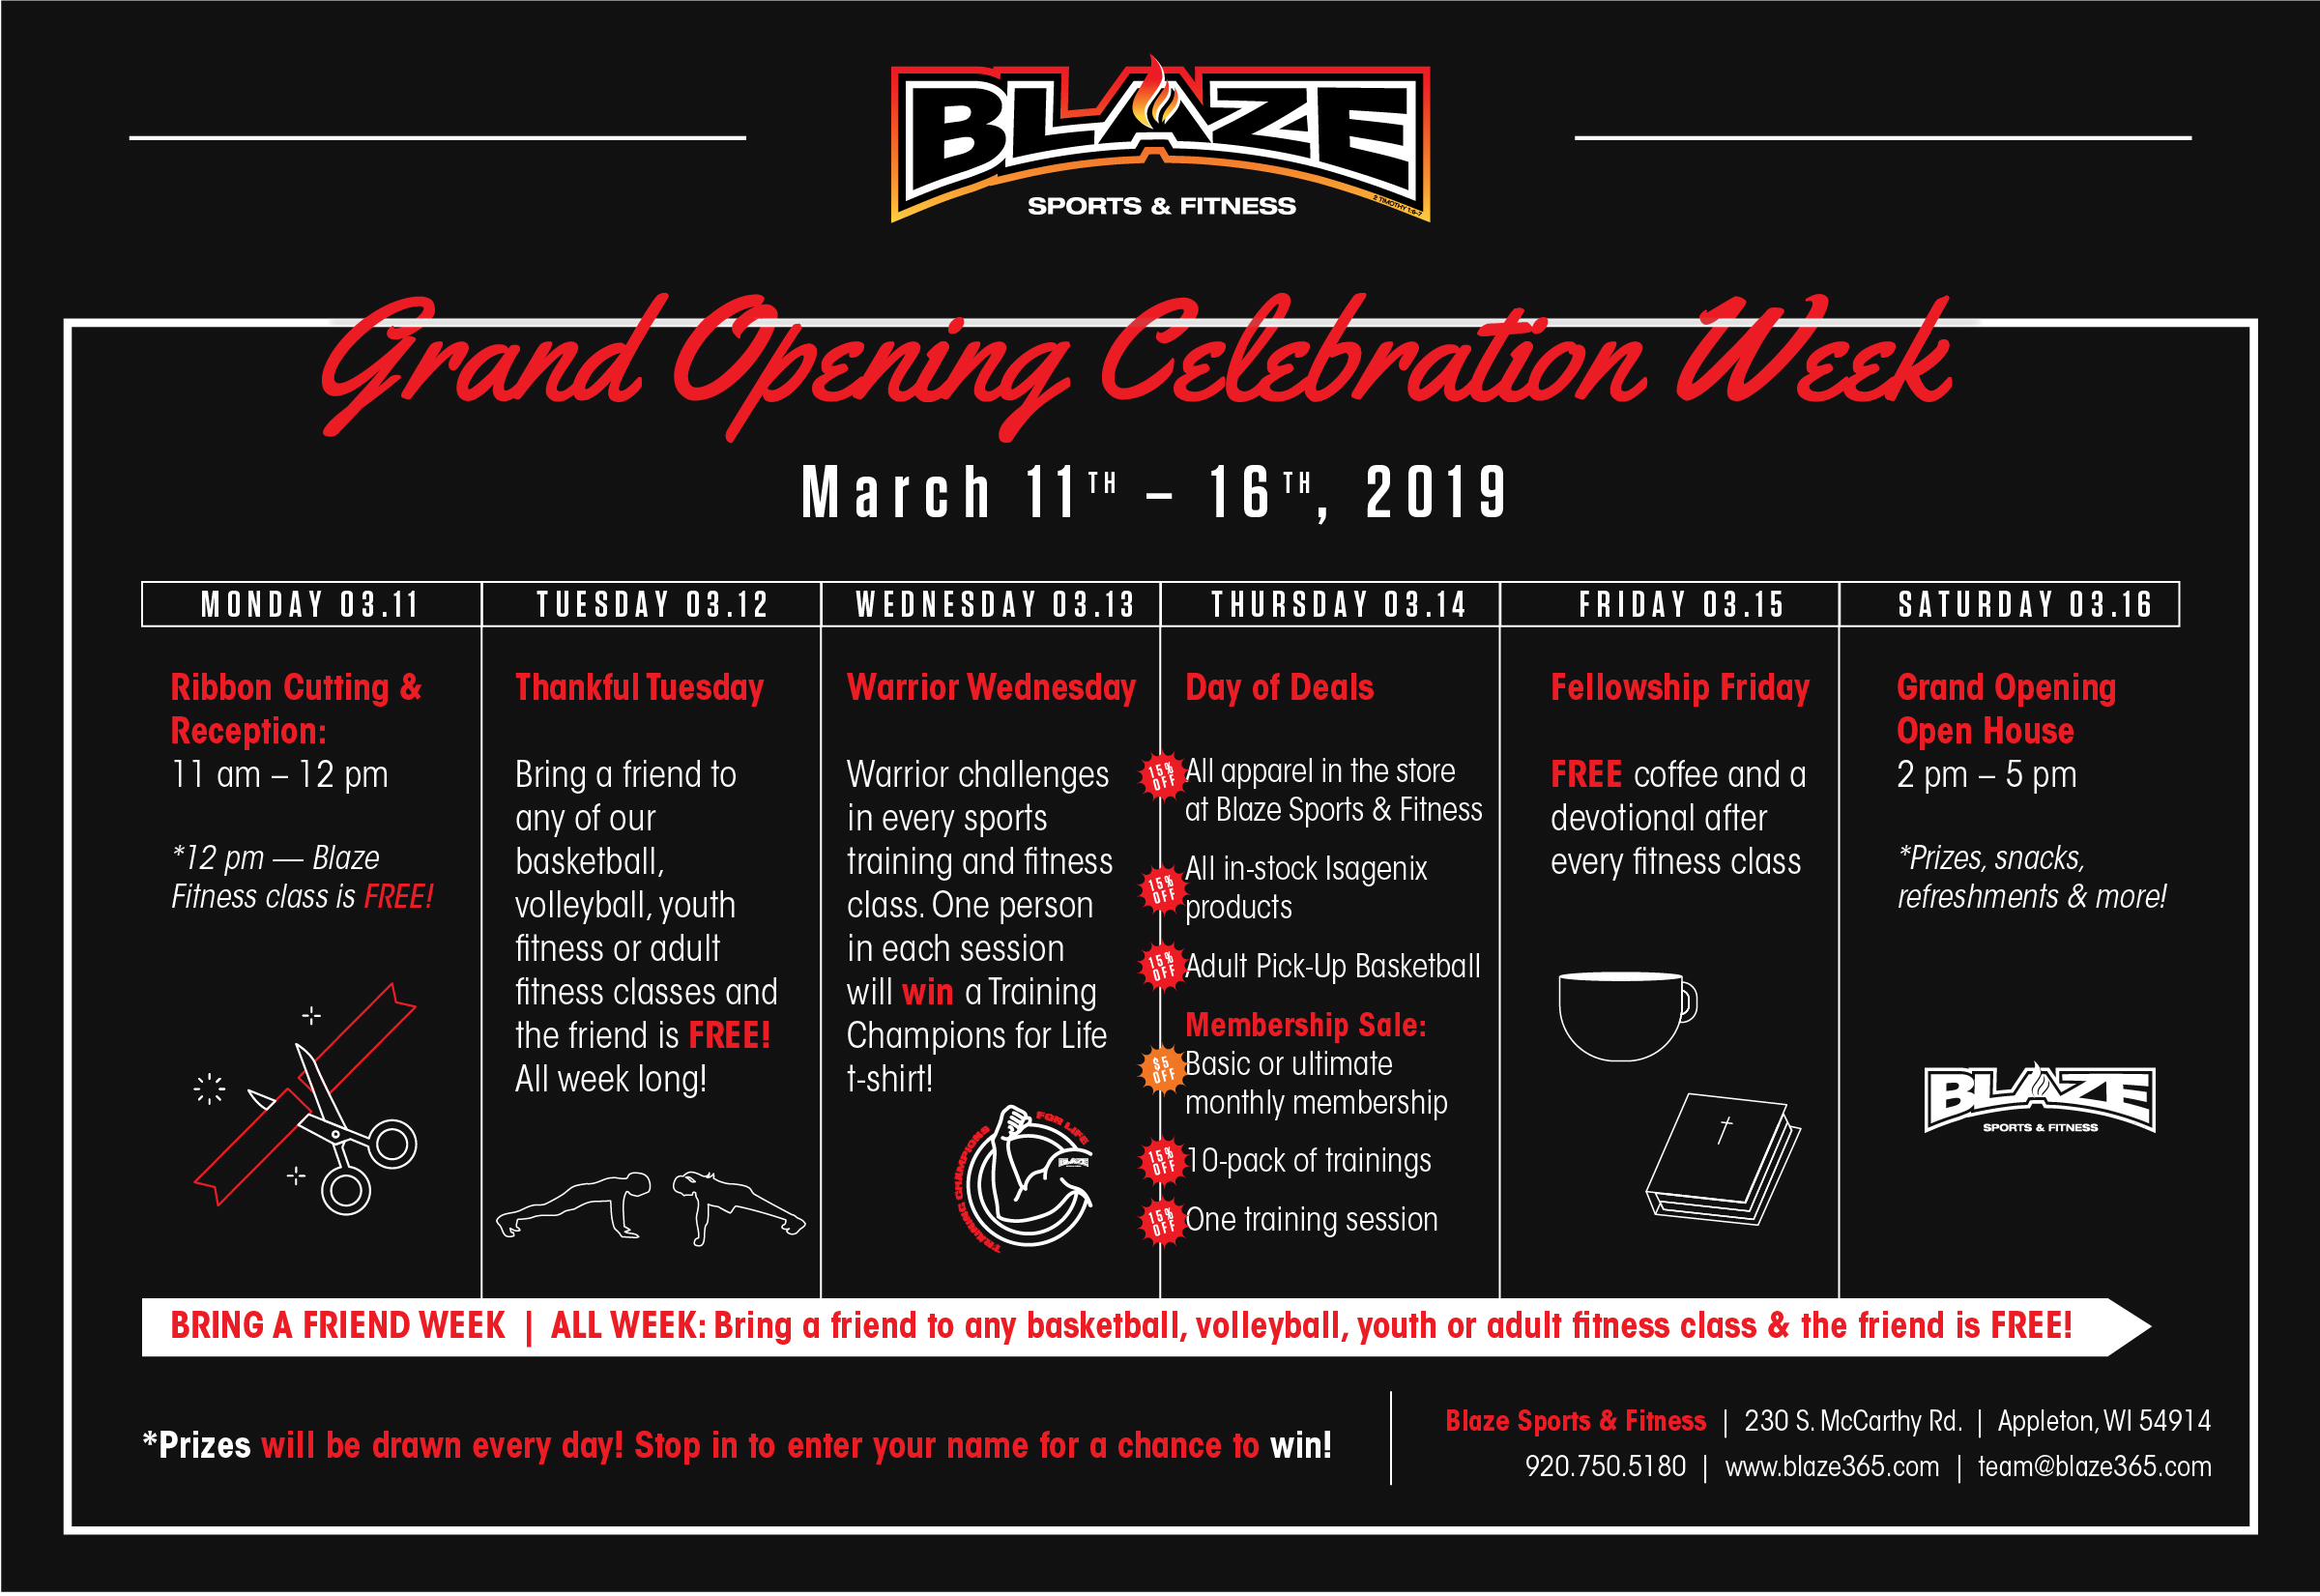 Blaze Sports & Fitness Grand Opening